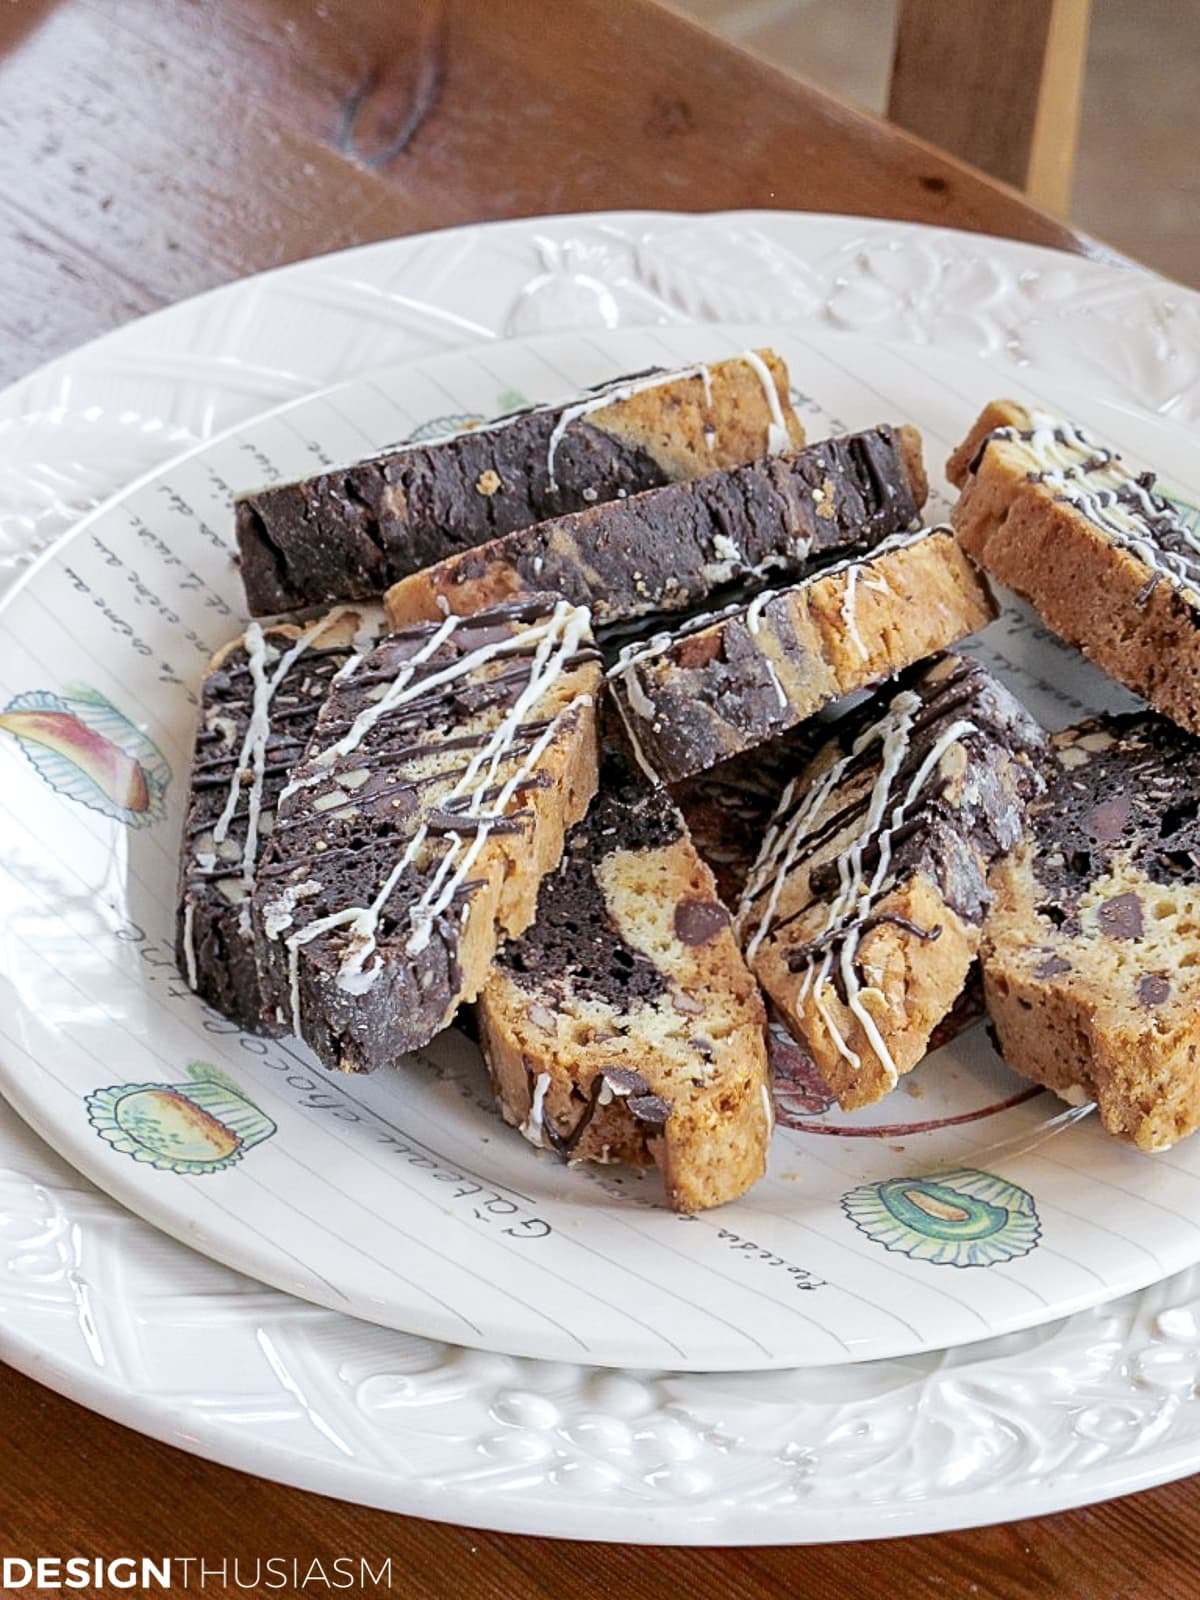 biscotti for table setting for lunch